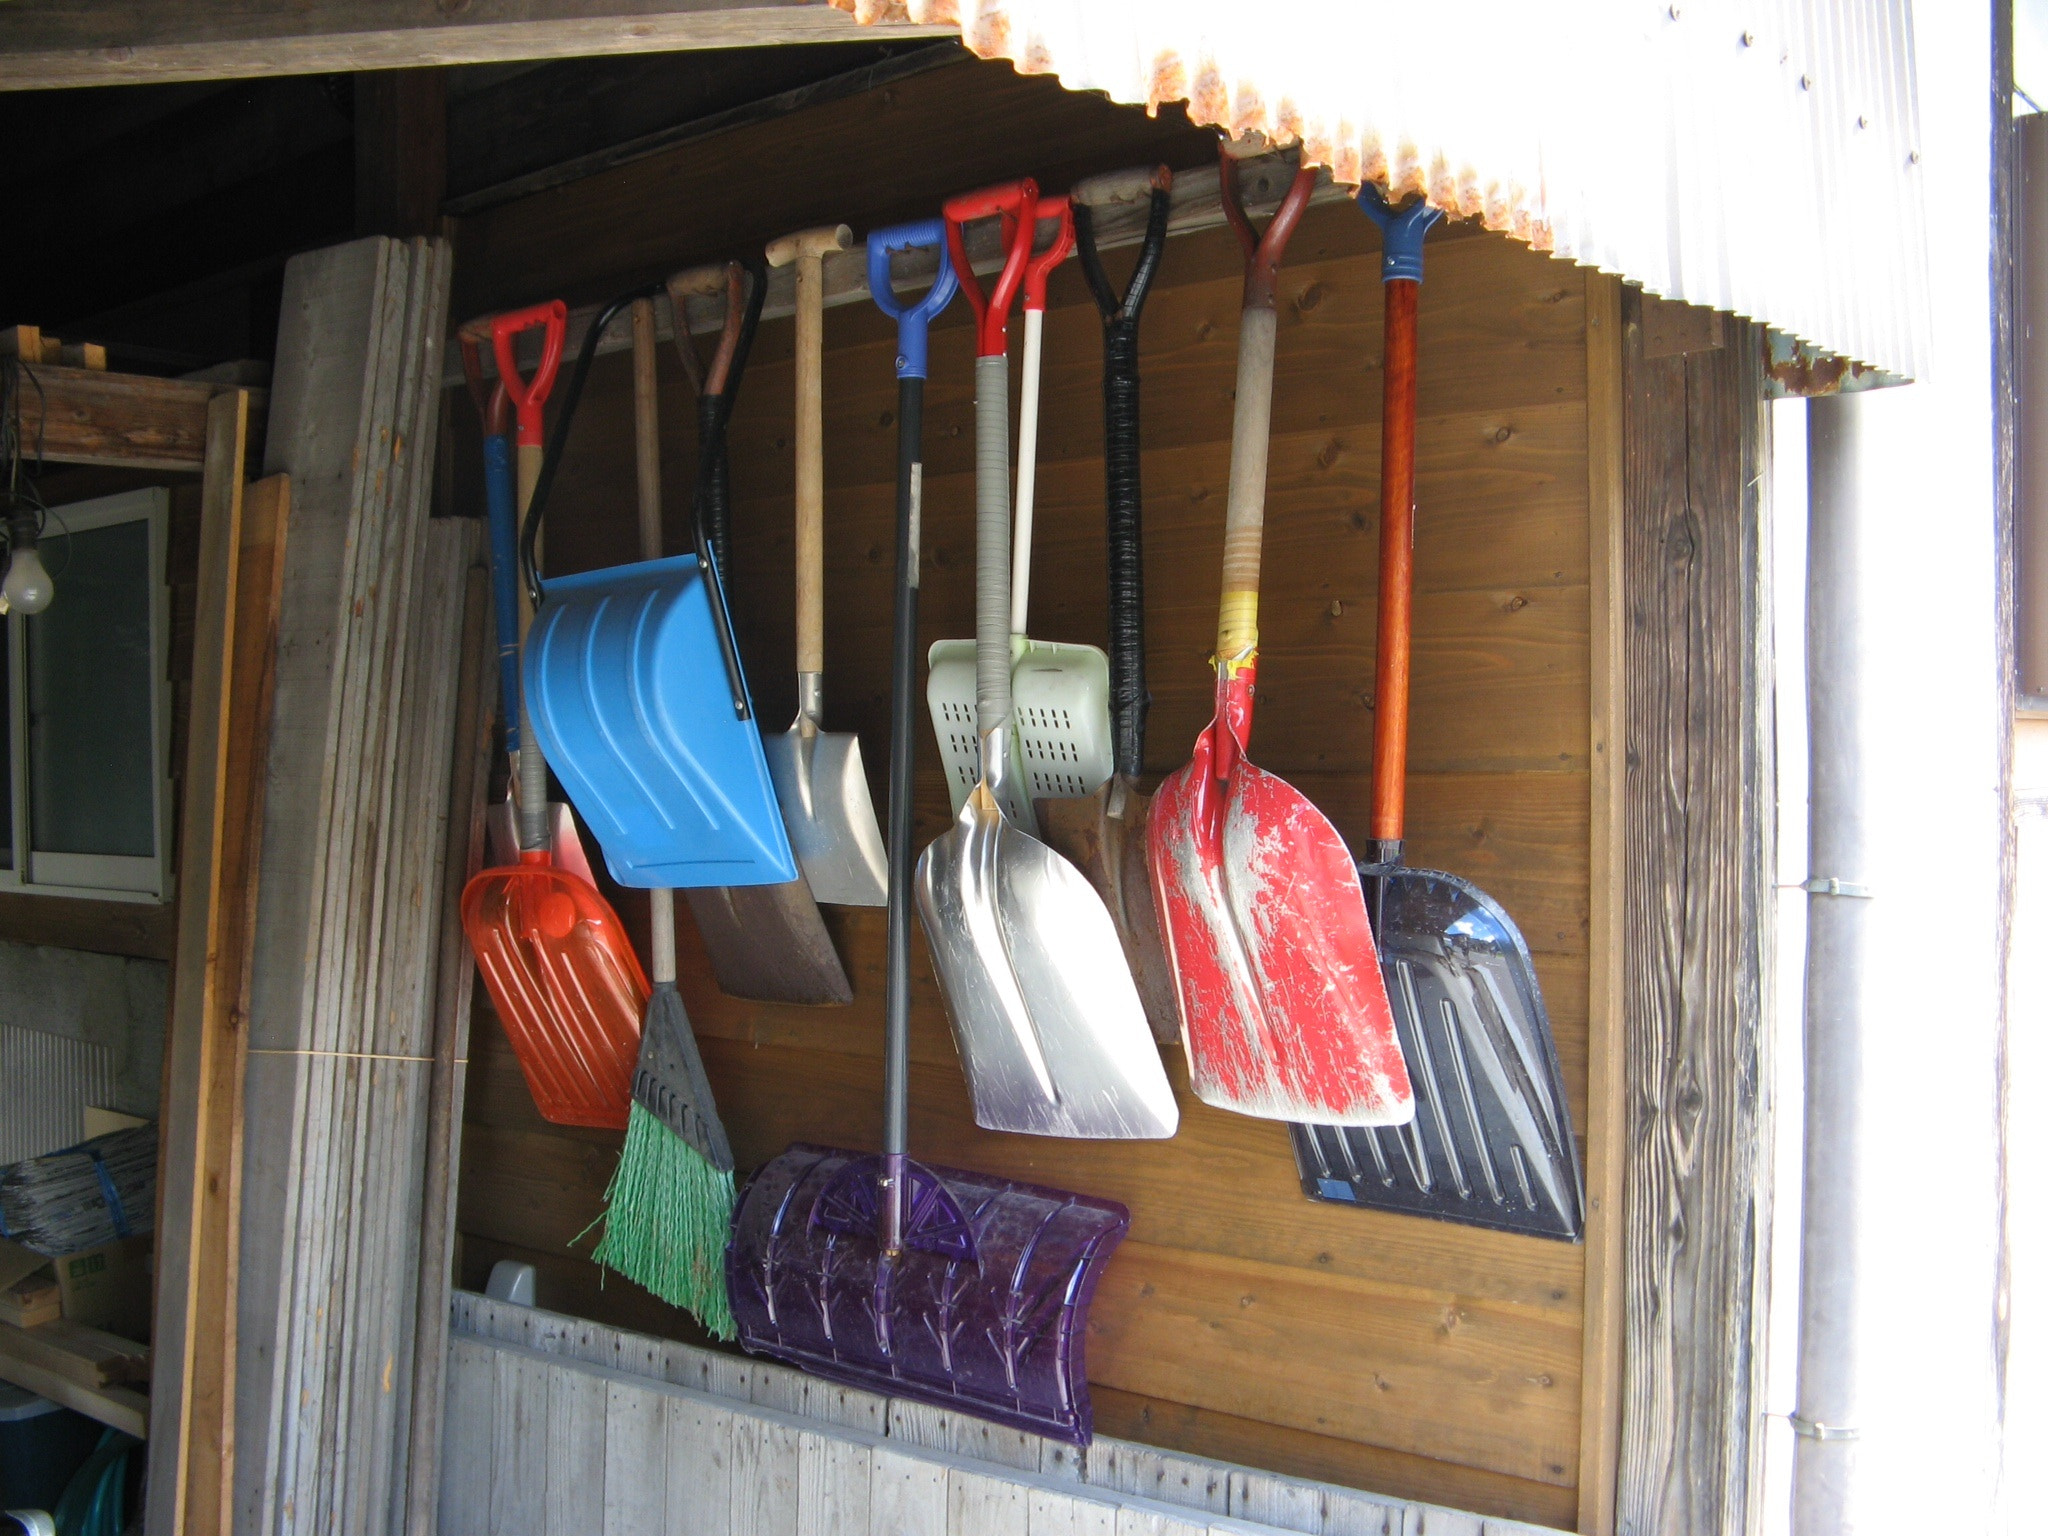 Photograph Snow shovels by sasoljubic on 500px